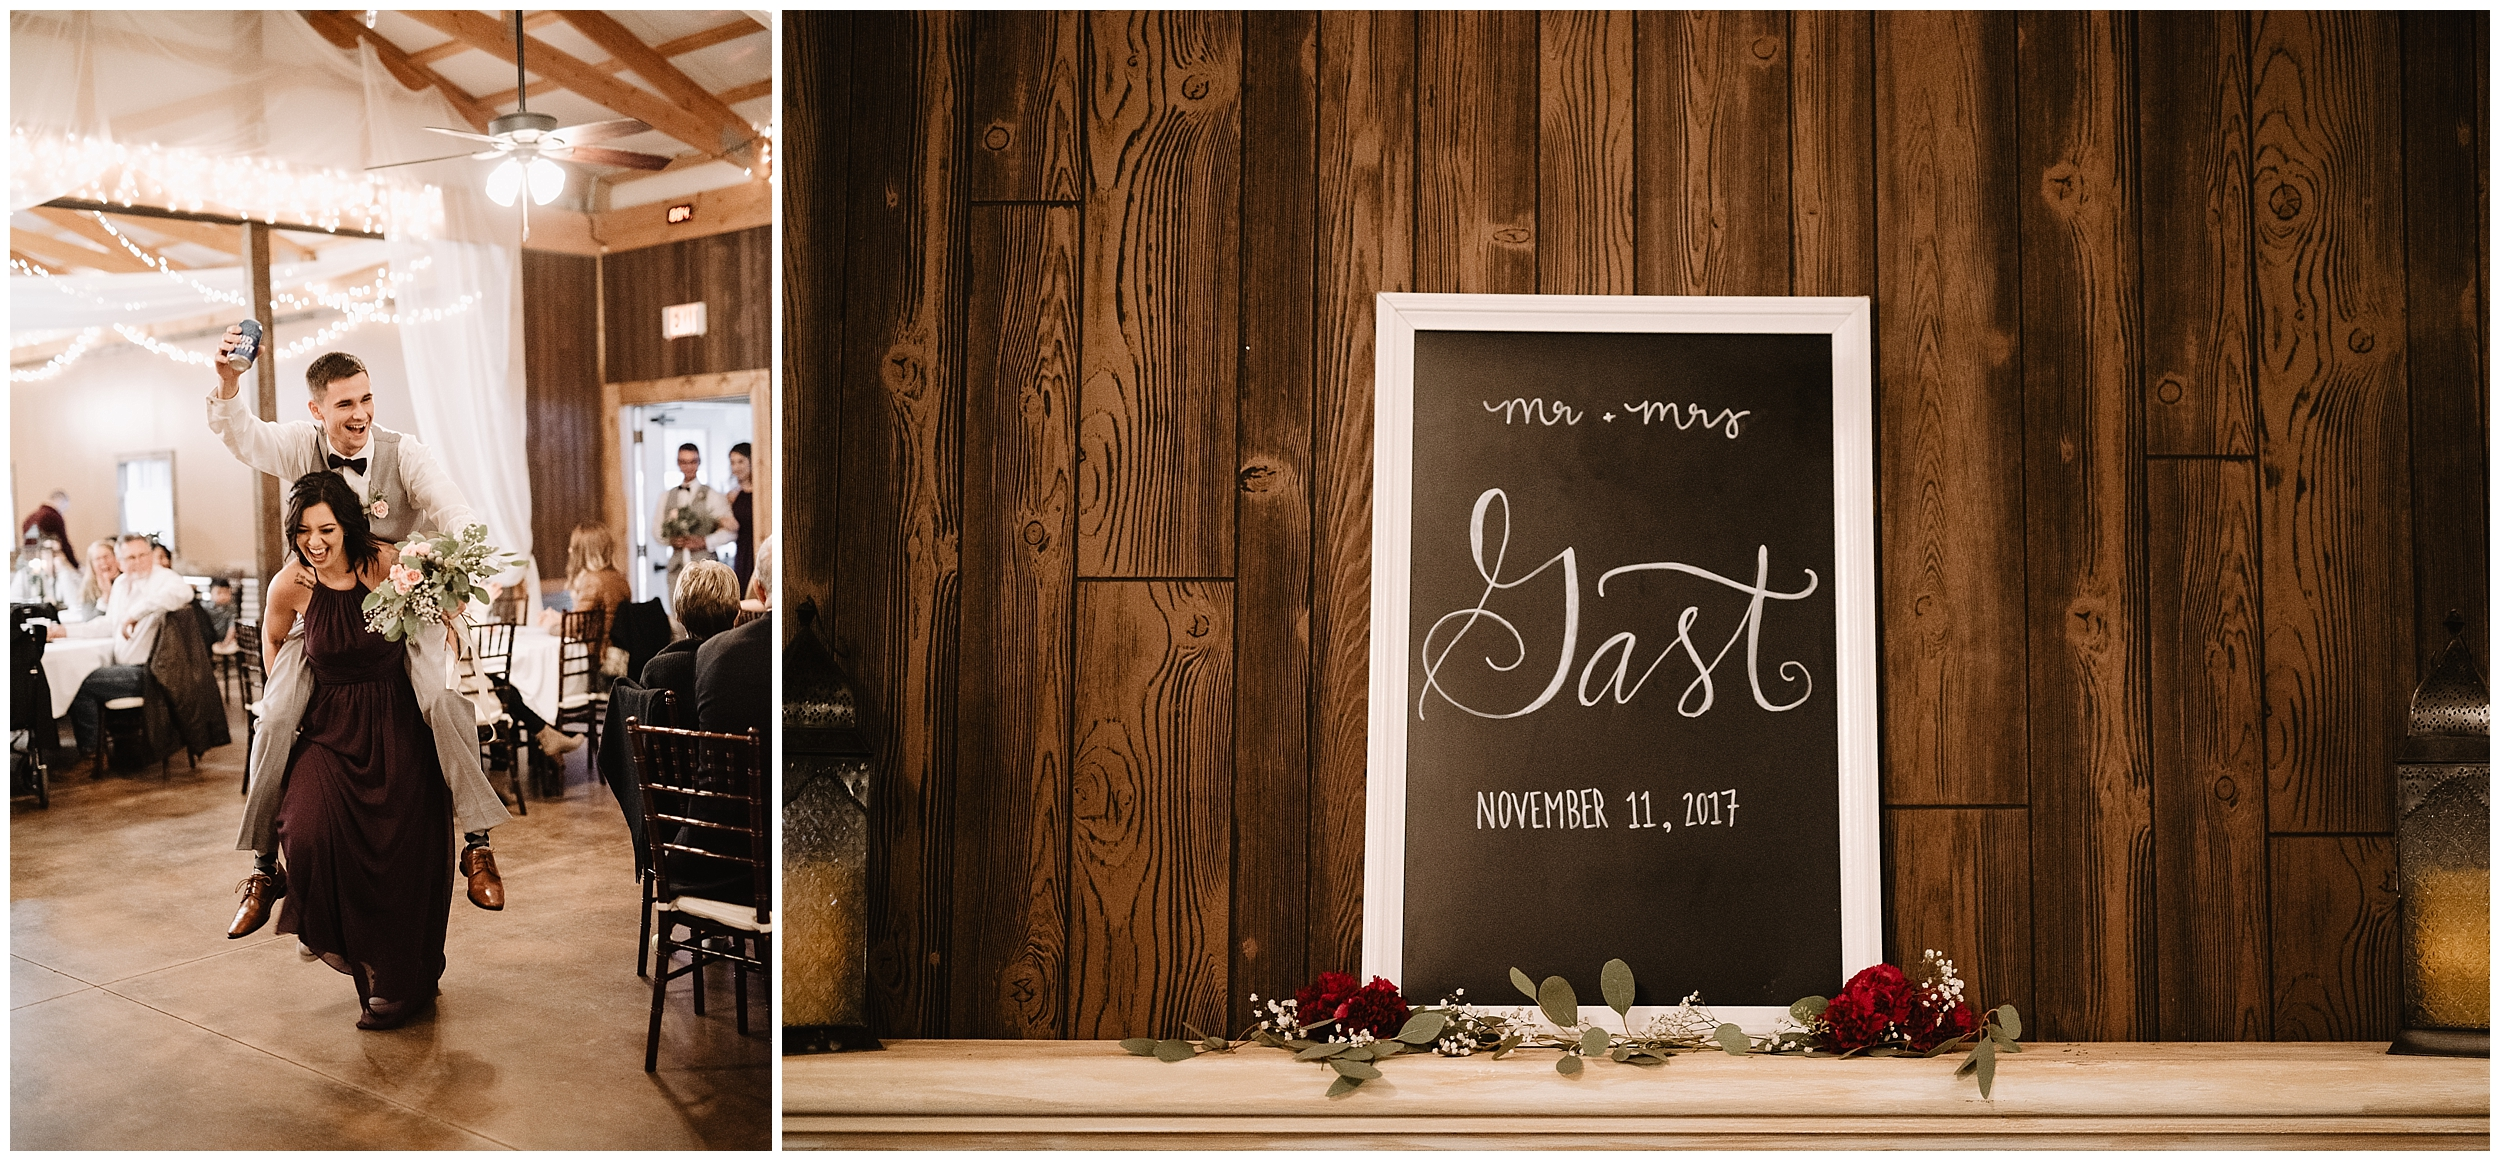 wedding photographer oklahoma reception decorations decor champagne table arrangements mr mrs mr. mrs.  viola kansas rustic timbers